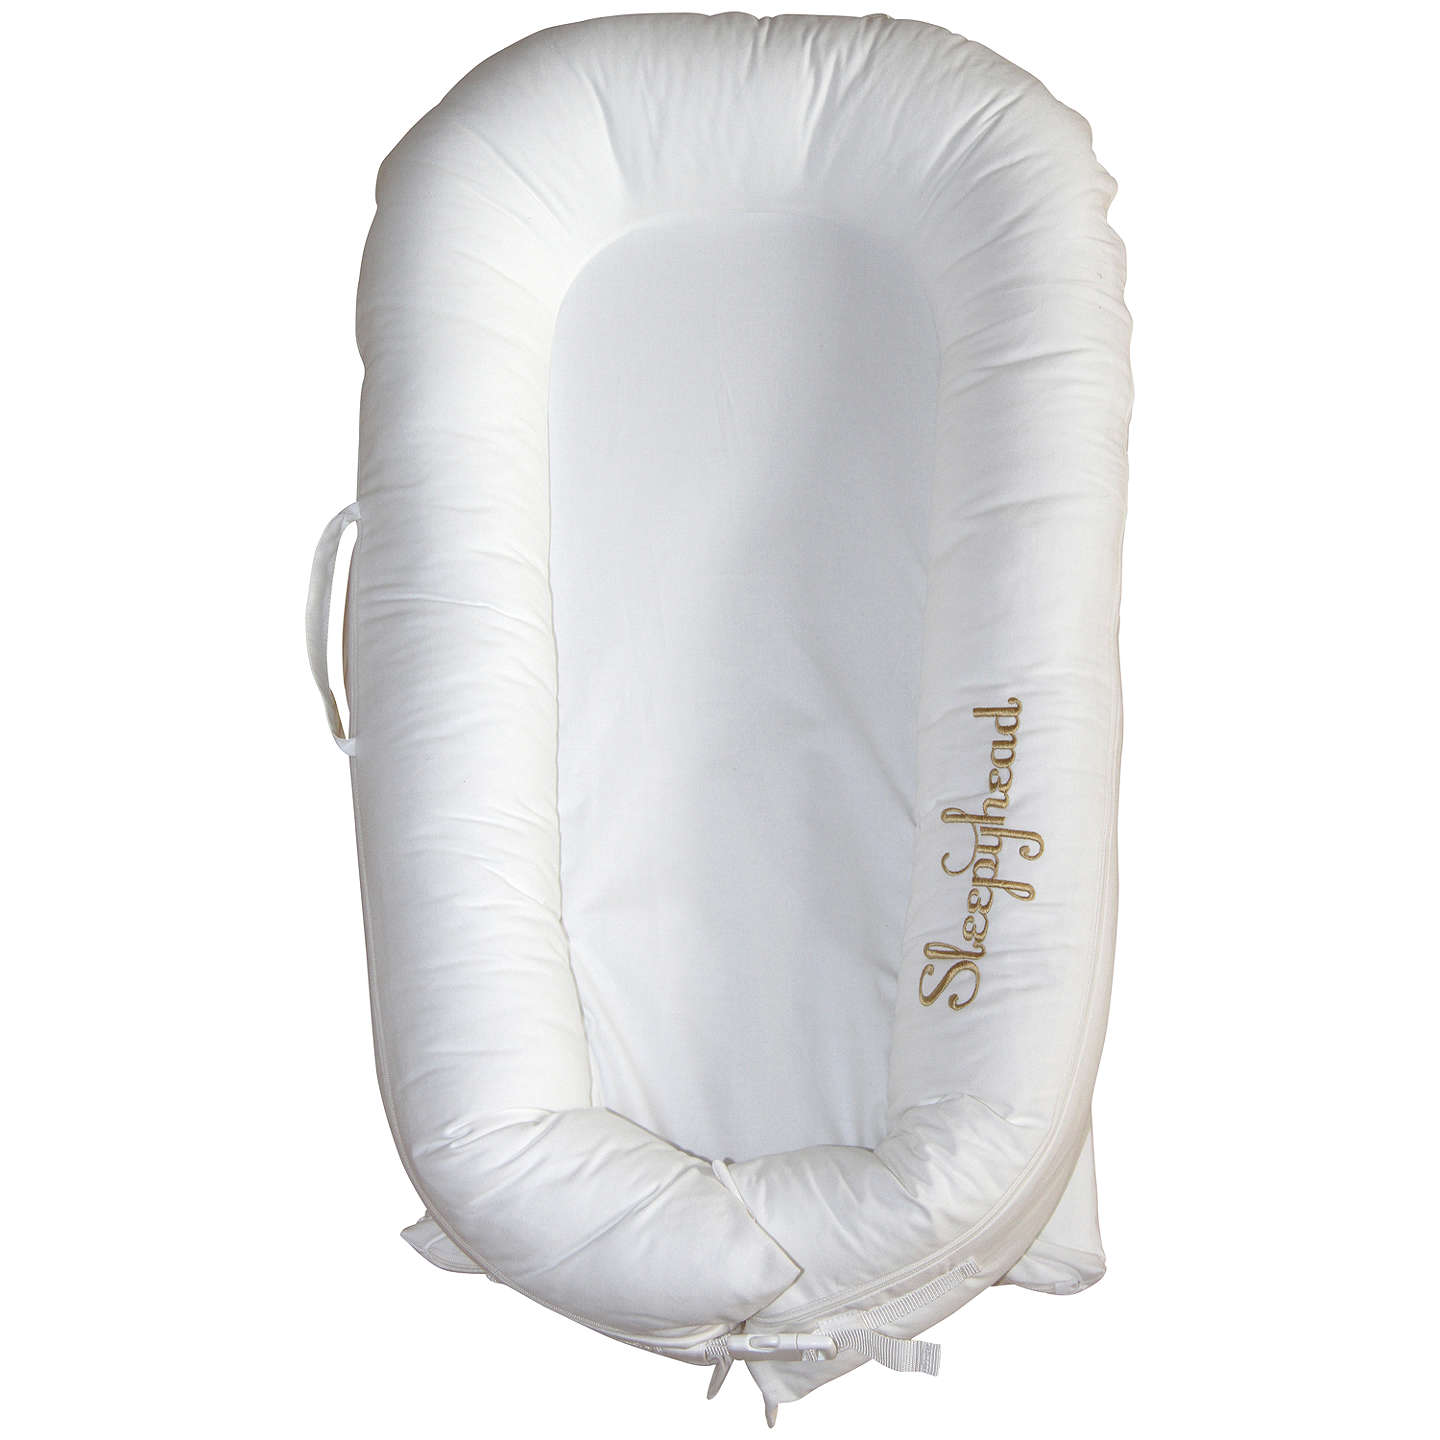 BuySleepyhead Deluxe Portable Baby Pod, White Online at johnlewis.com